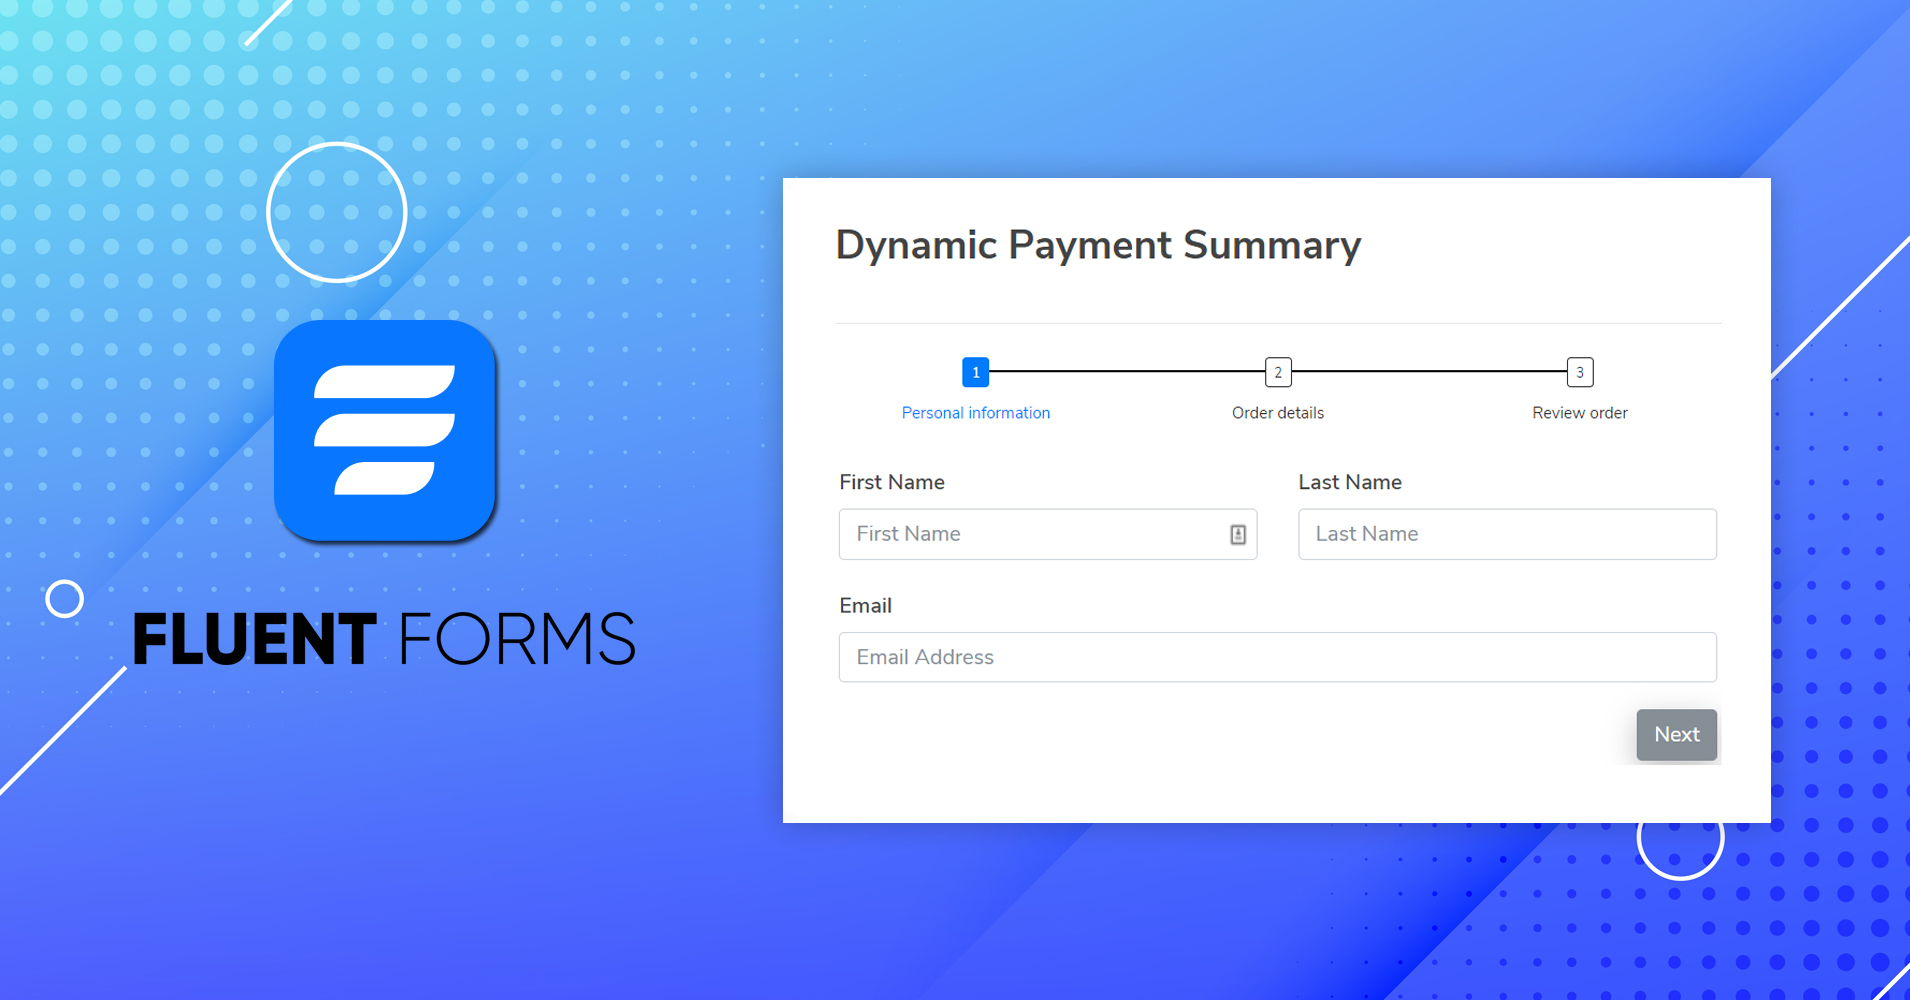 Fluent Forms Dynamic Payment Summary